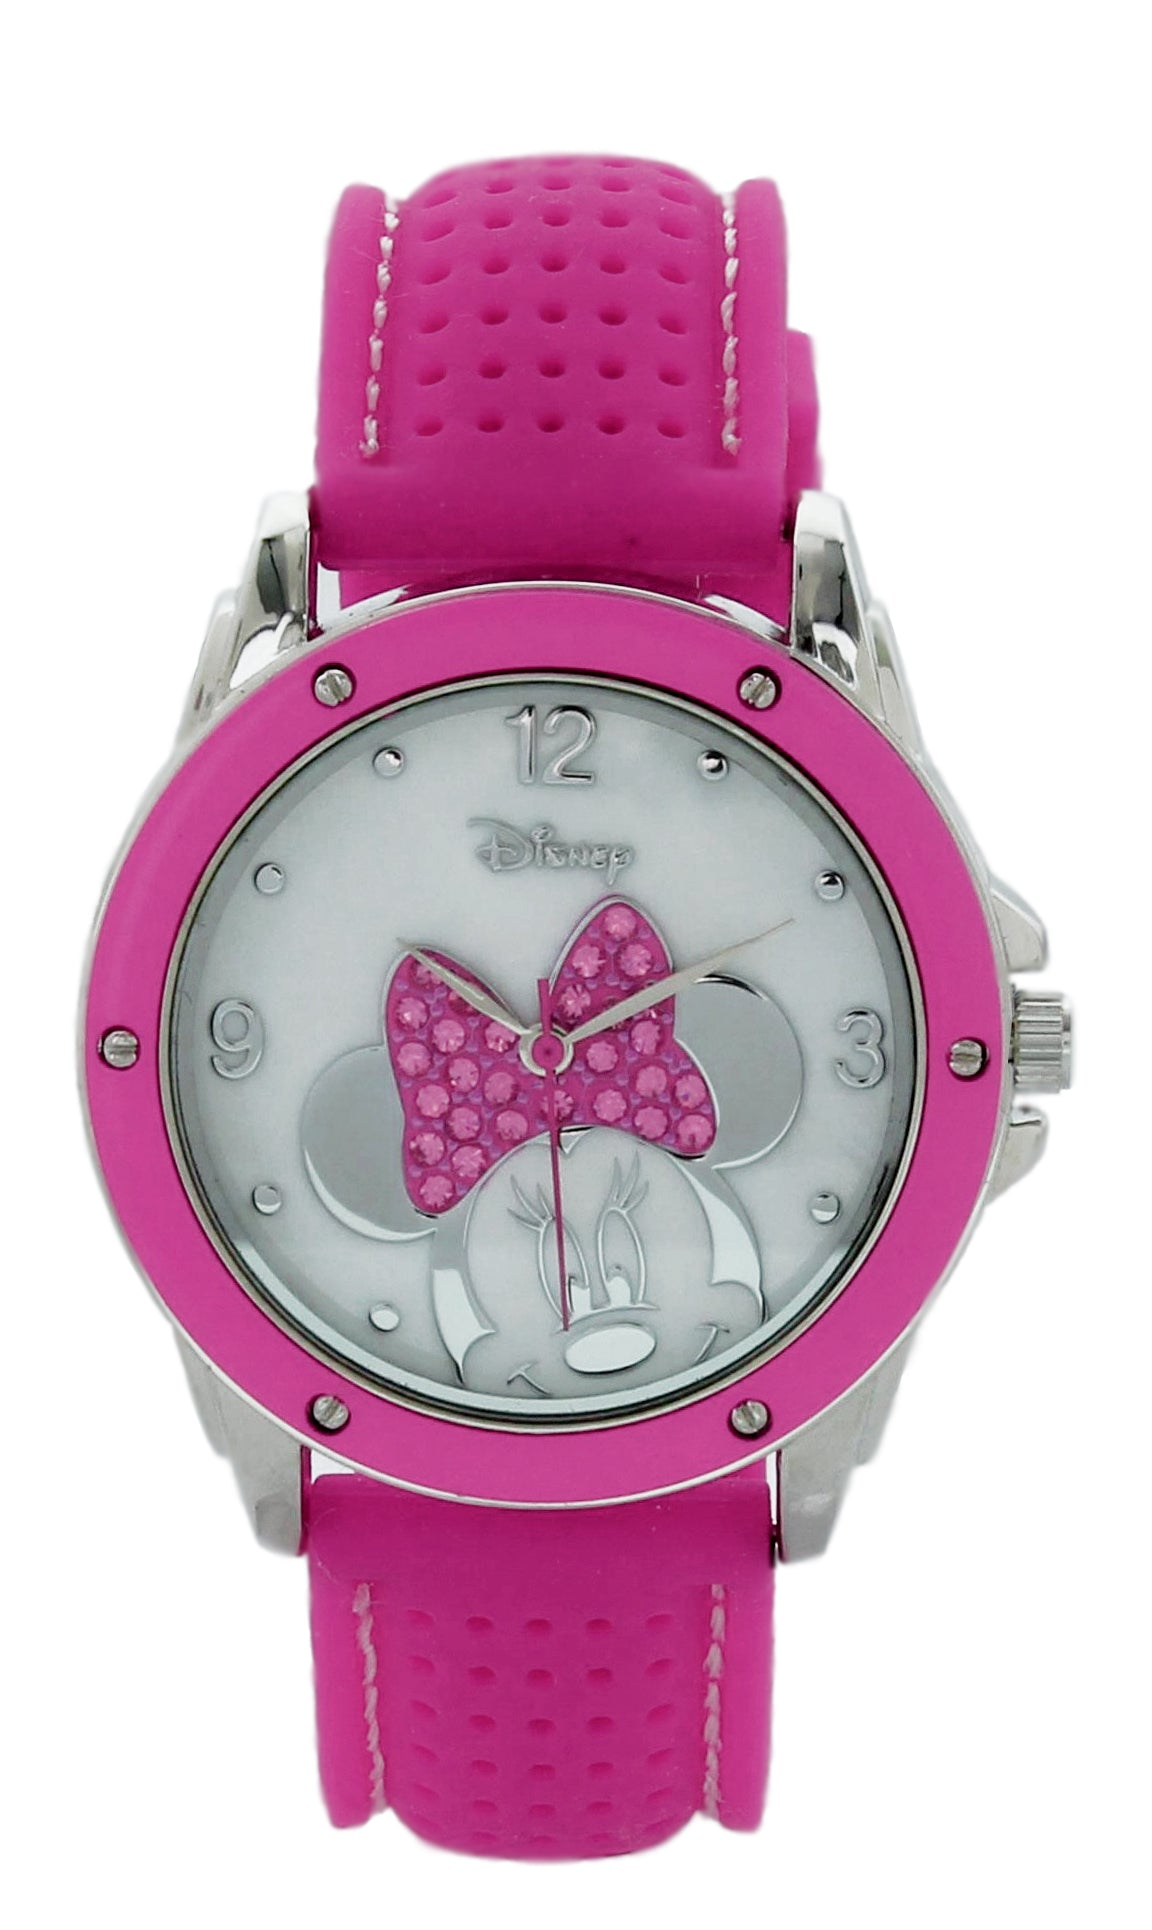 Disney Women's Minnie Mouse Watch w/ MOP Dial & Hot Pink Strap - MN1227EE